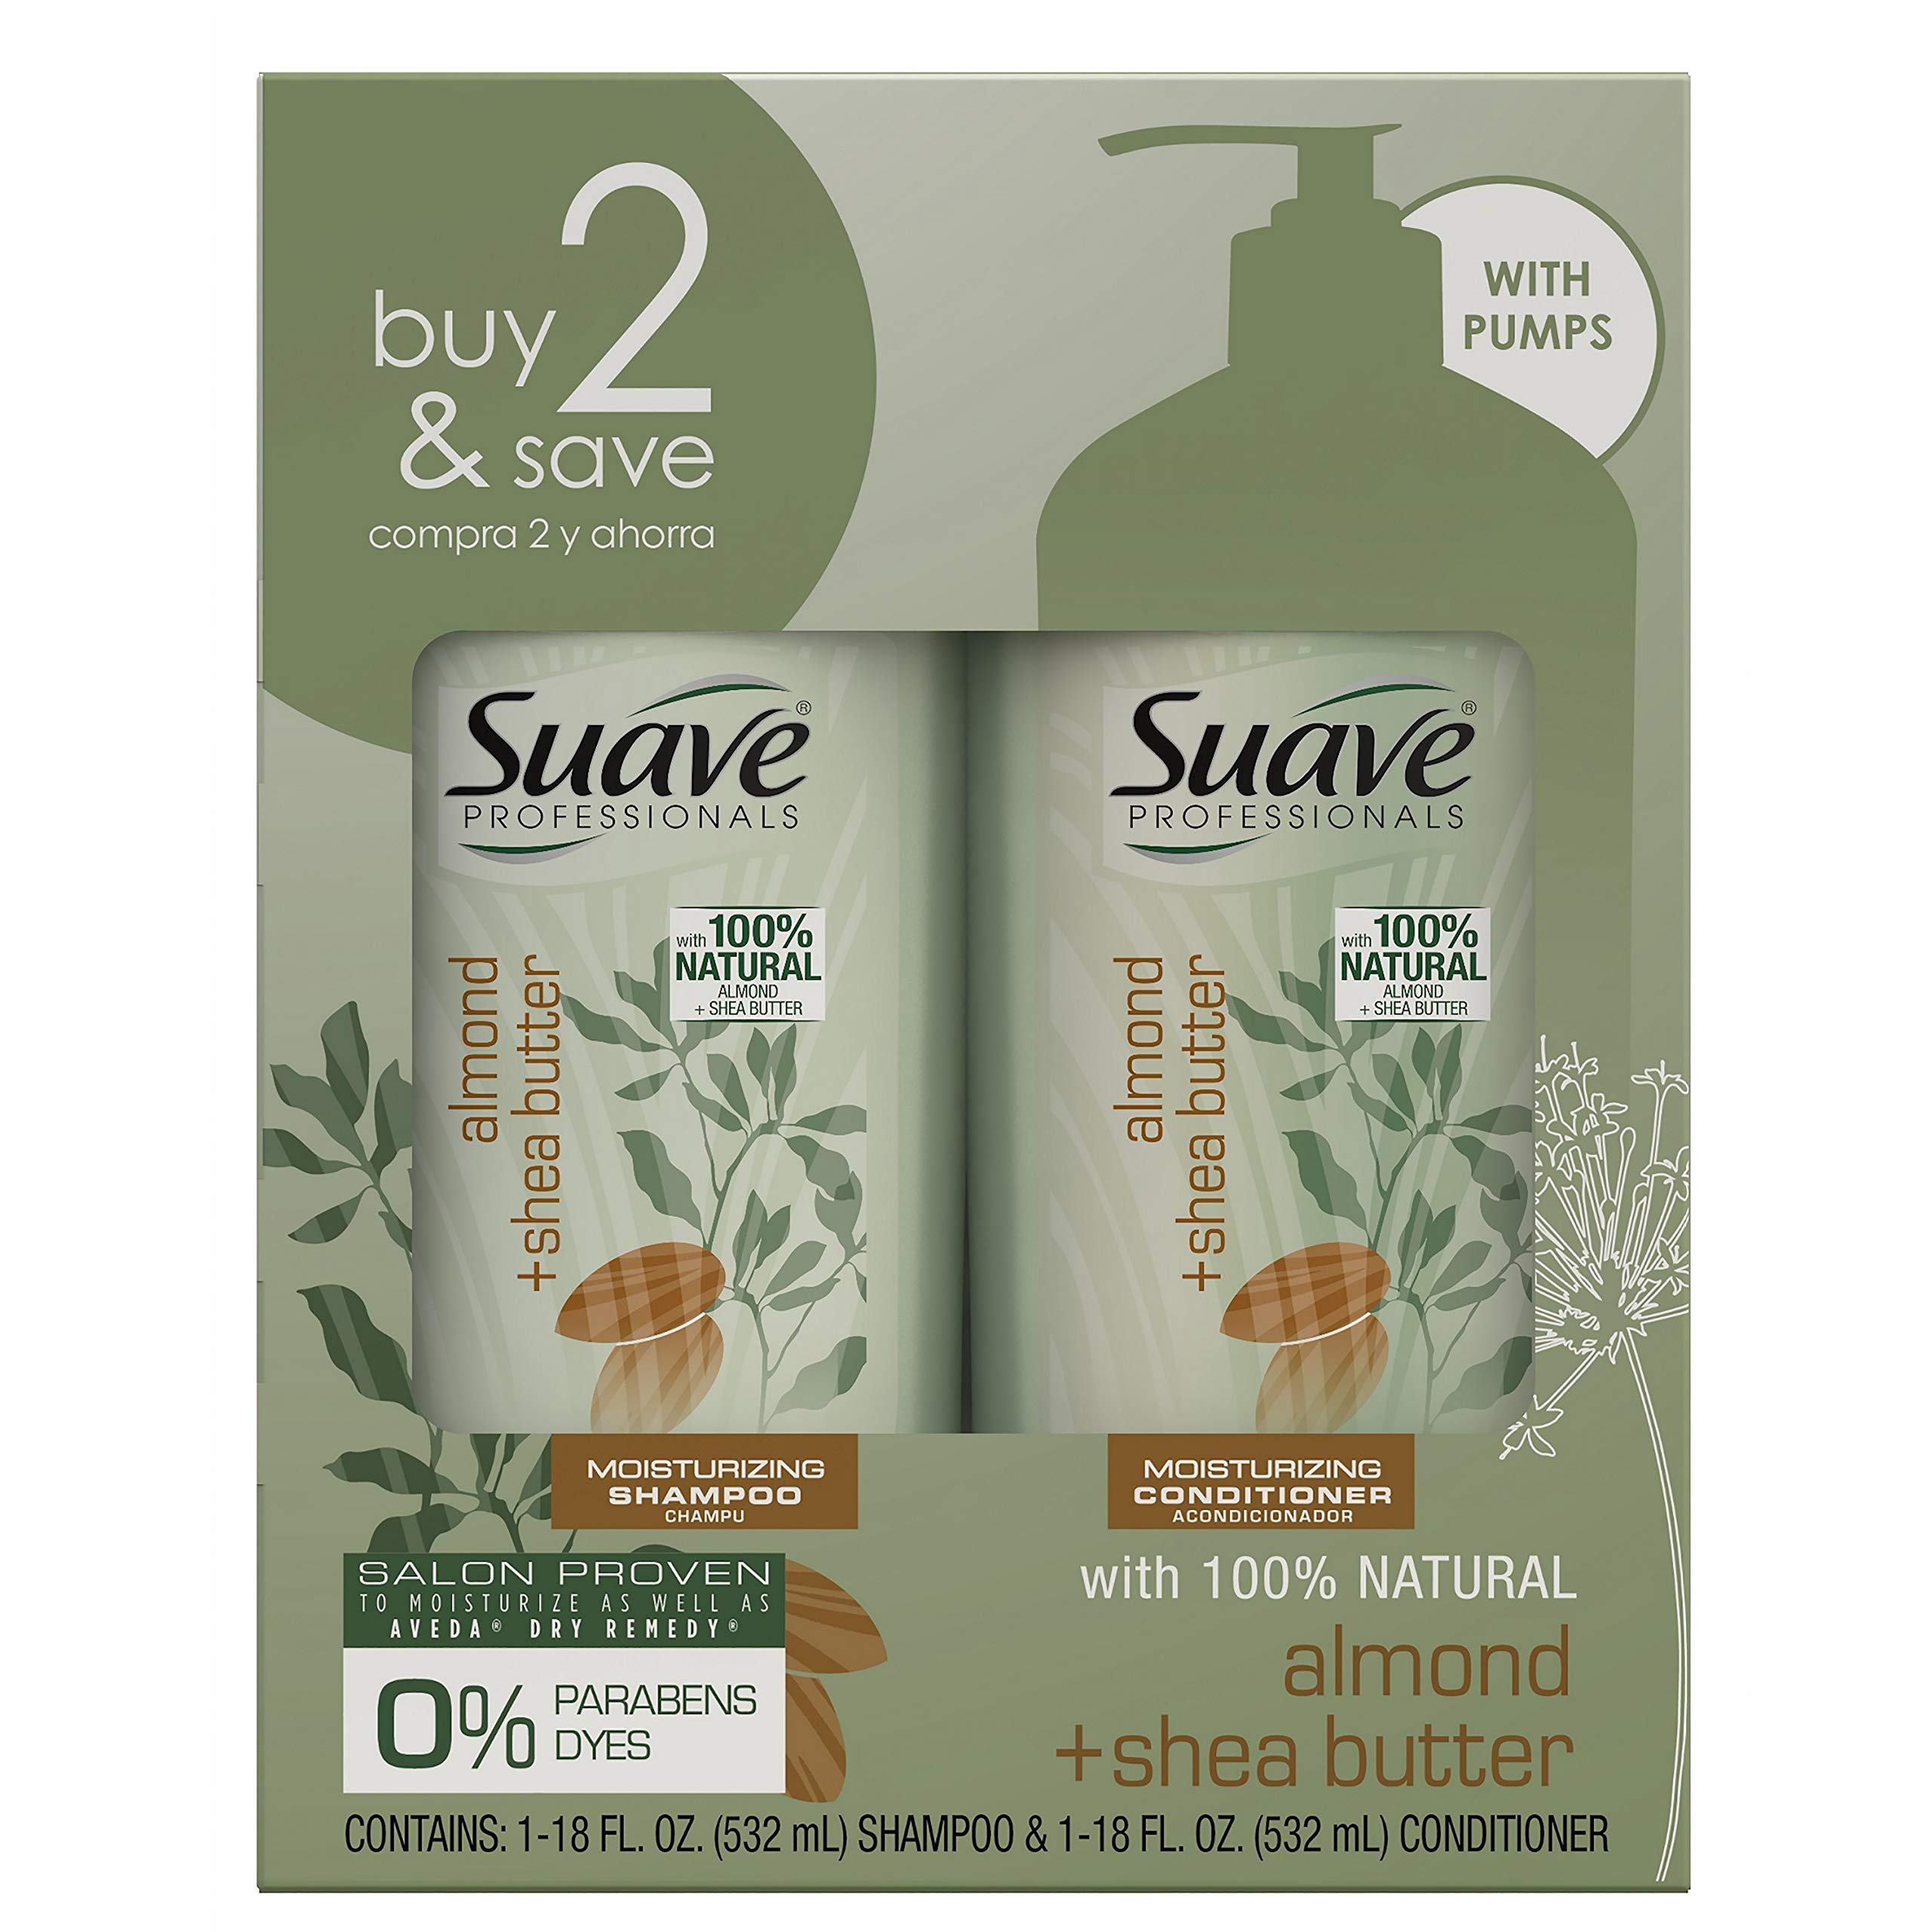 SUAVE HAIR Professionals Almond + Shea Butter Moisturizing Shampoo And Conditioner, 36 Fl Oz (packaging may vary) by Suave